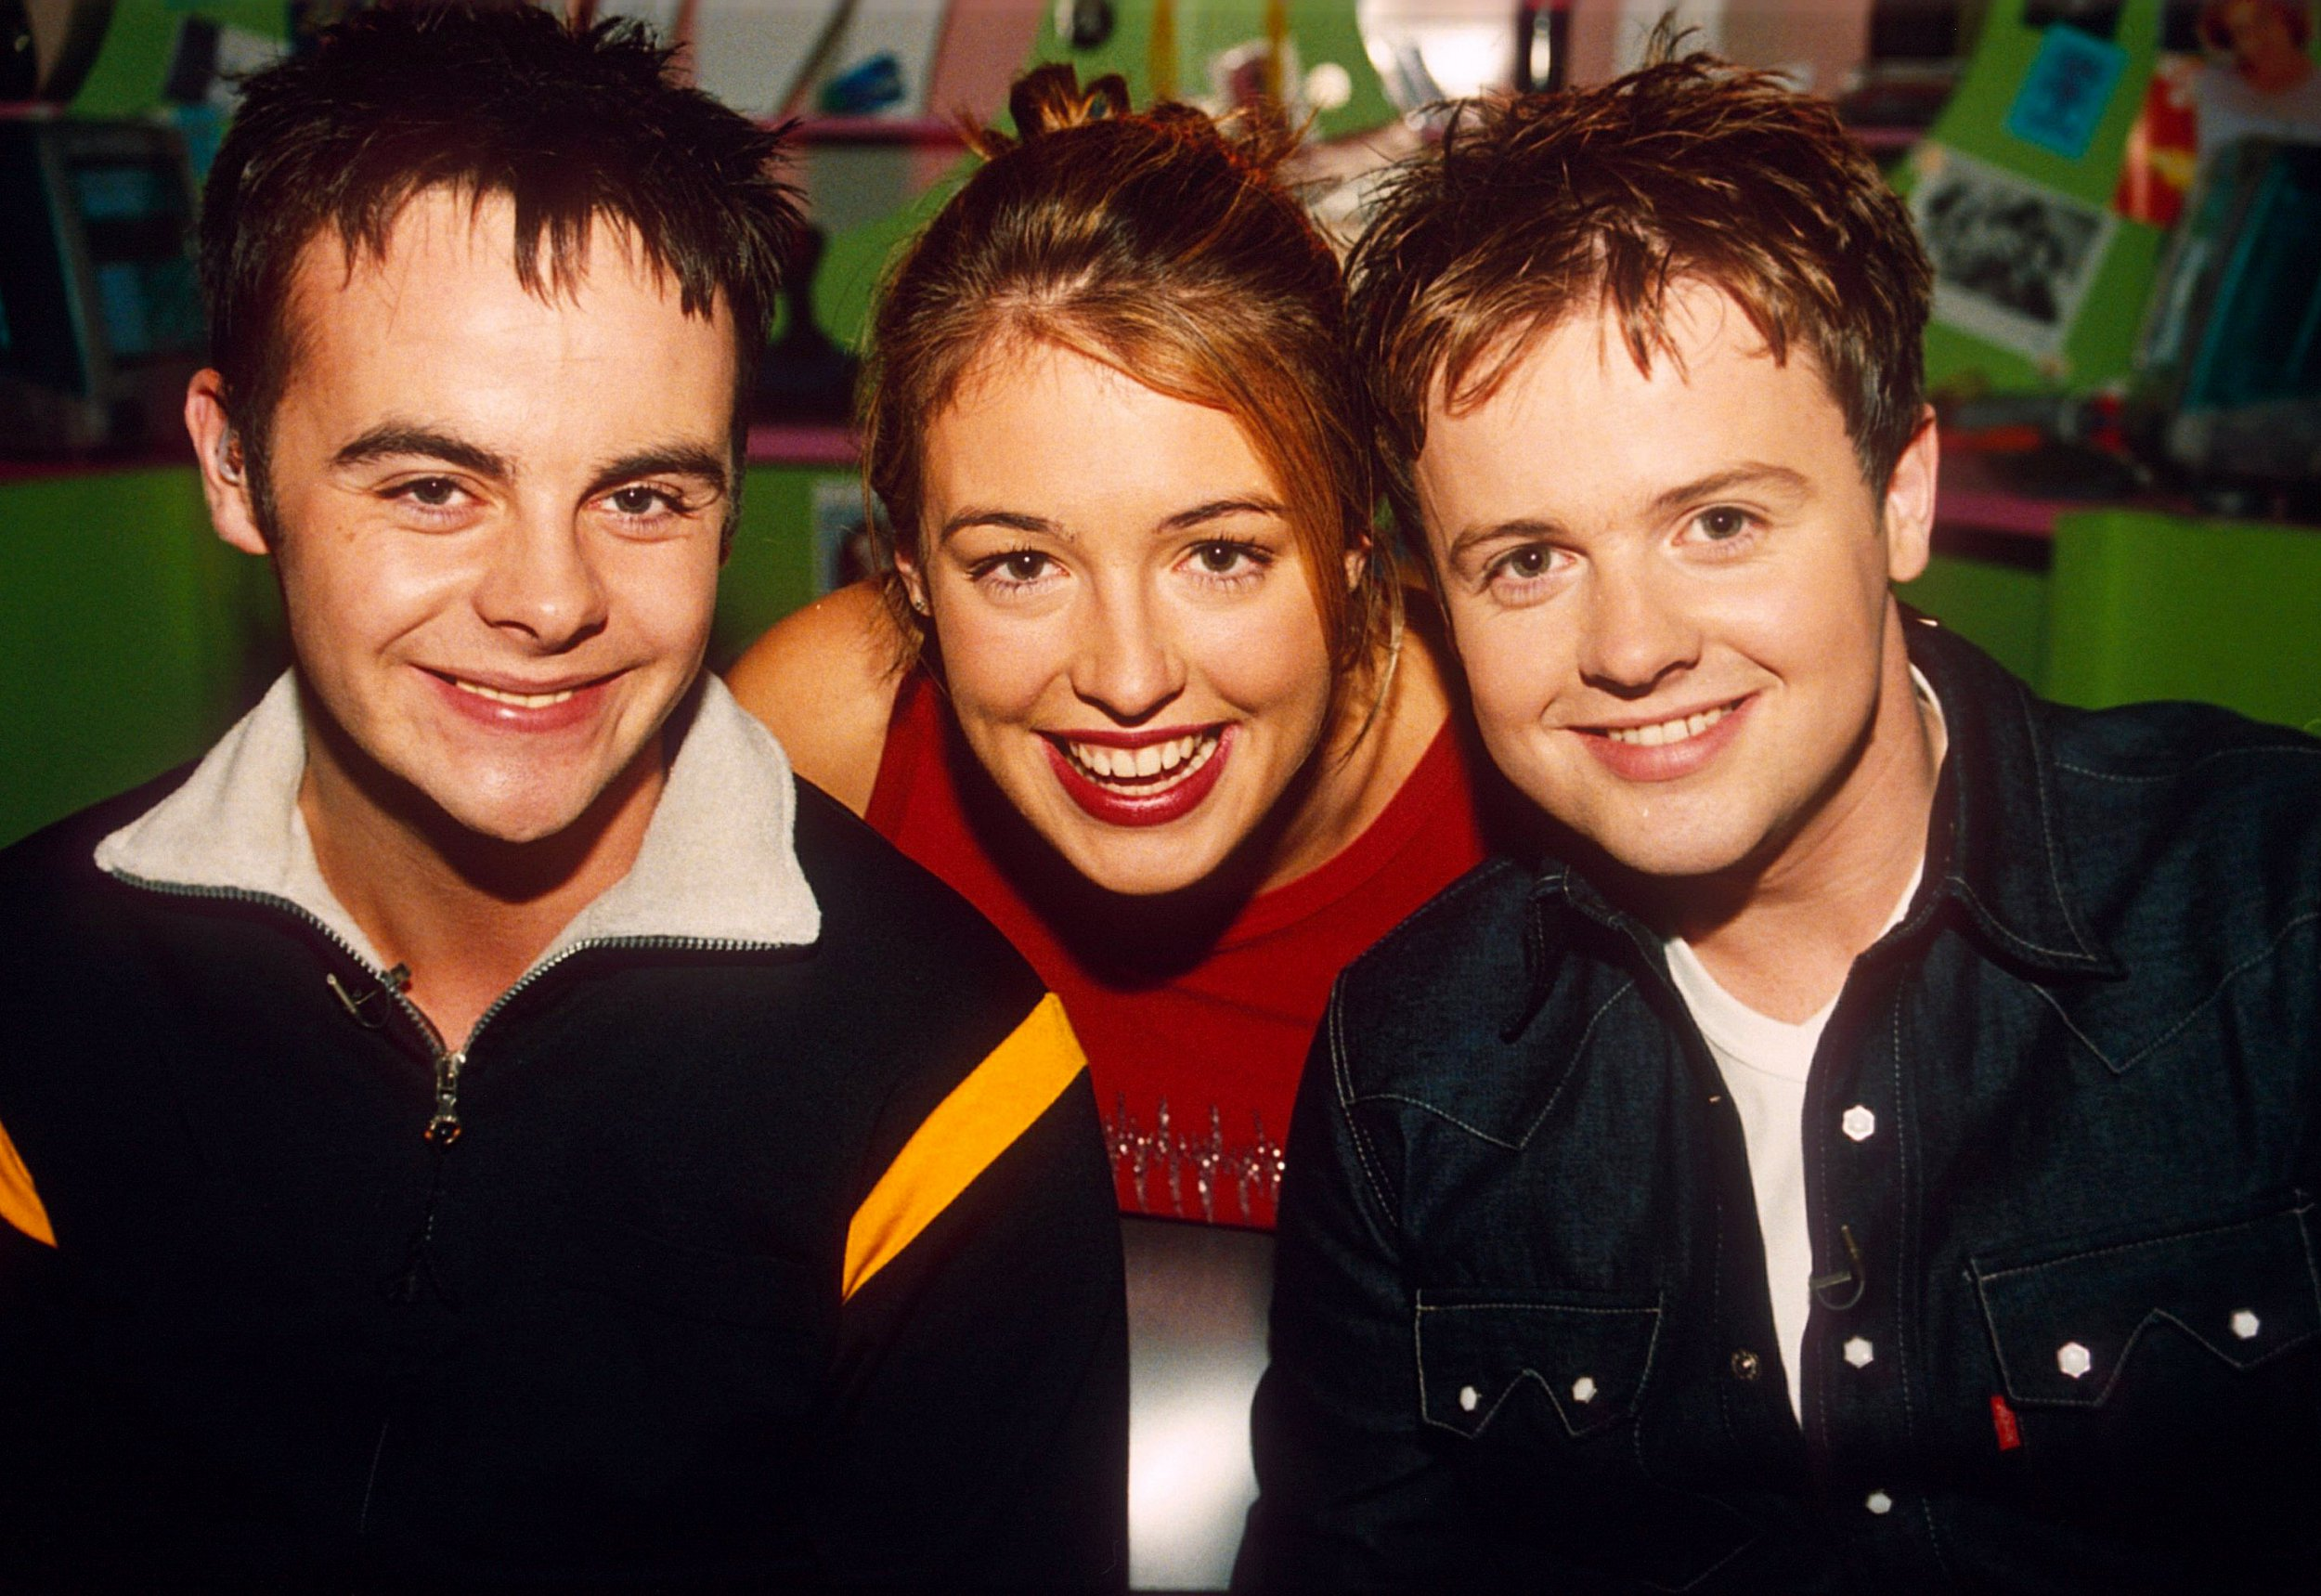 Relive the first ever episode of Chums as Declan Donnelly posts throwback to mark 20 years since the first SMTV Live